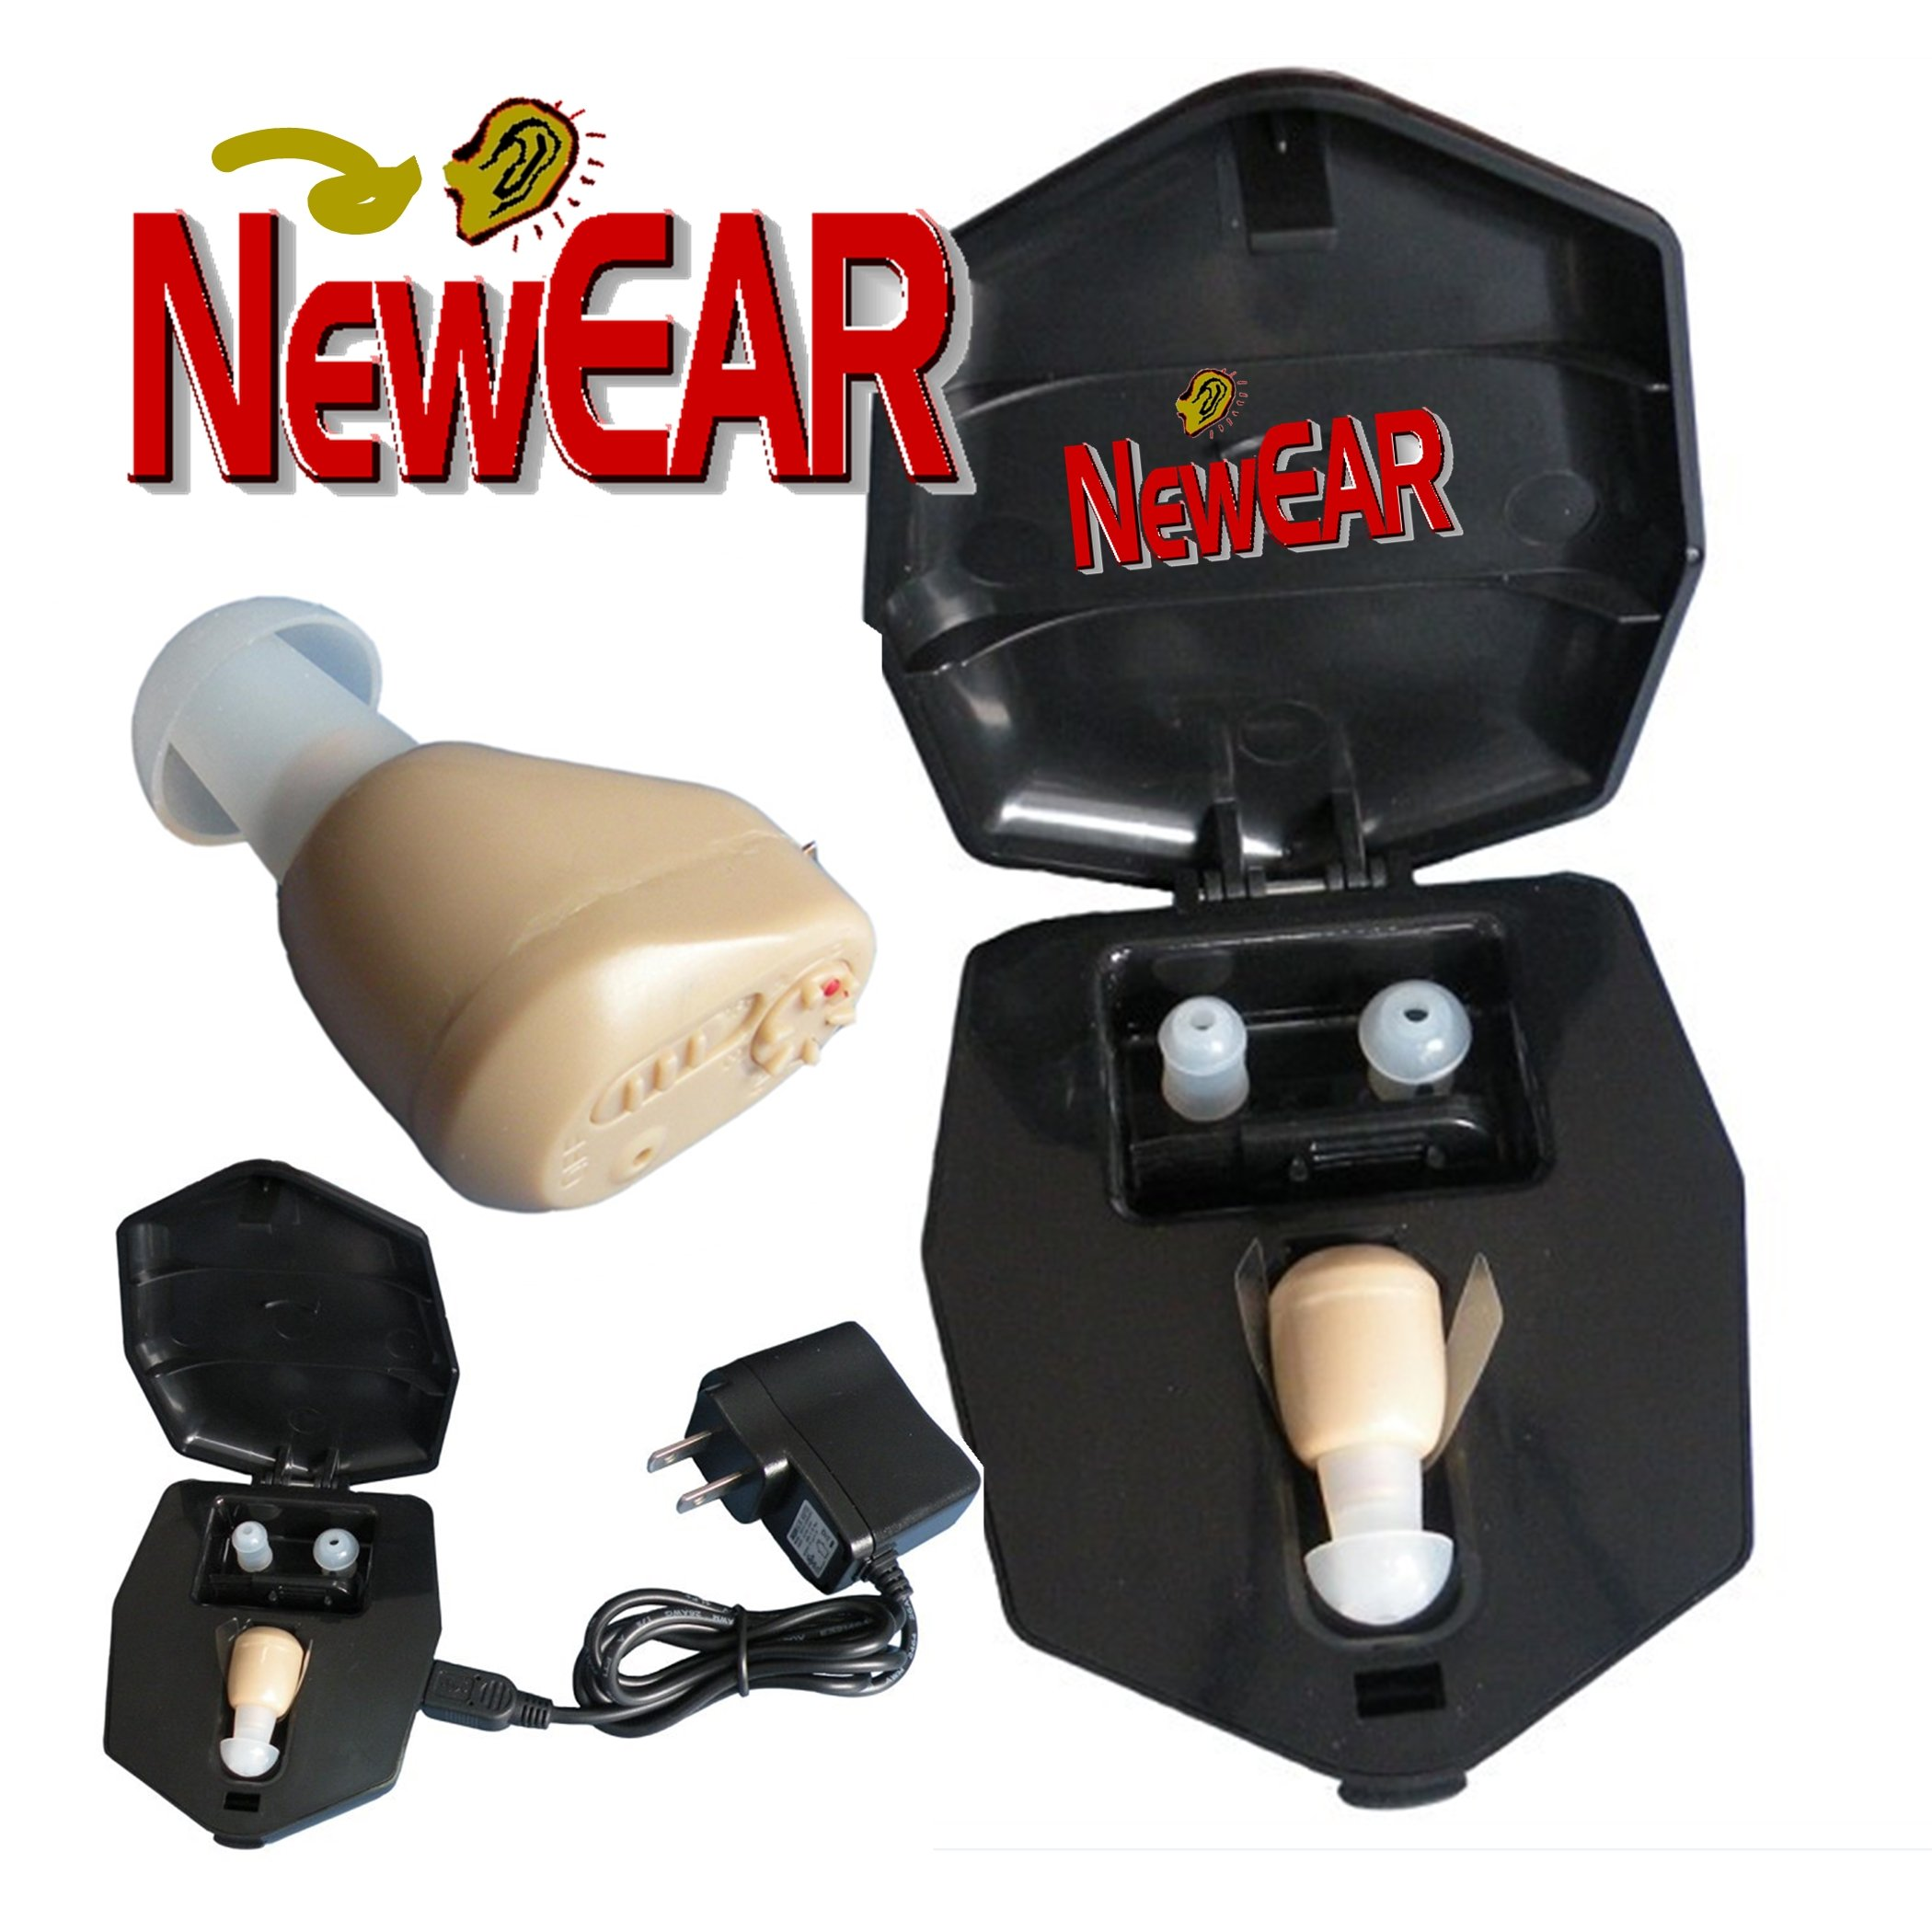 NewEar ITE Mini Ear Amplifier Rechargeable Microtron - So Small It's Barely Visible!